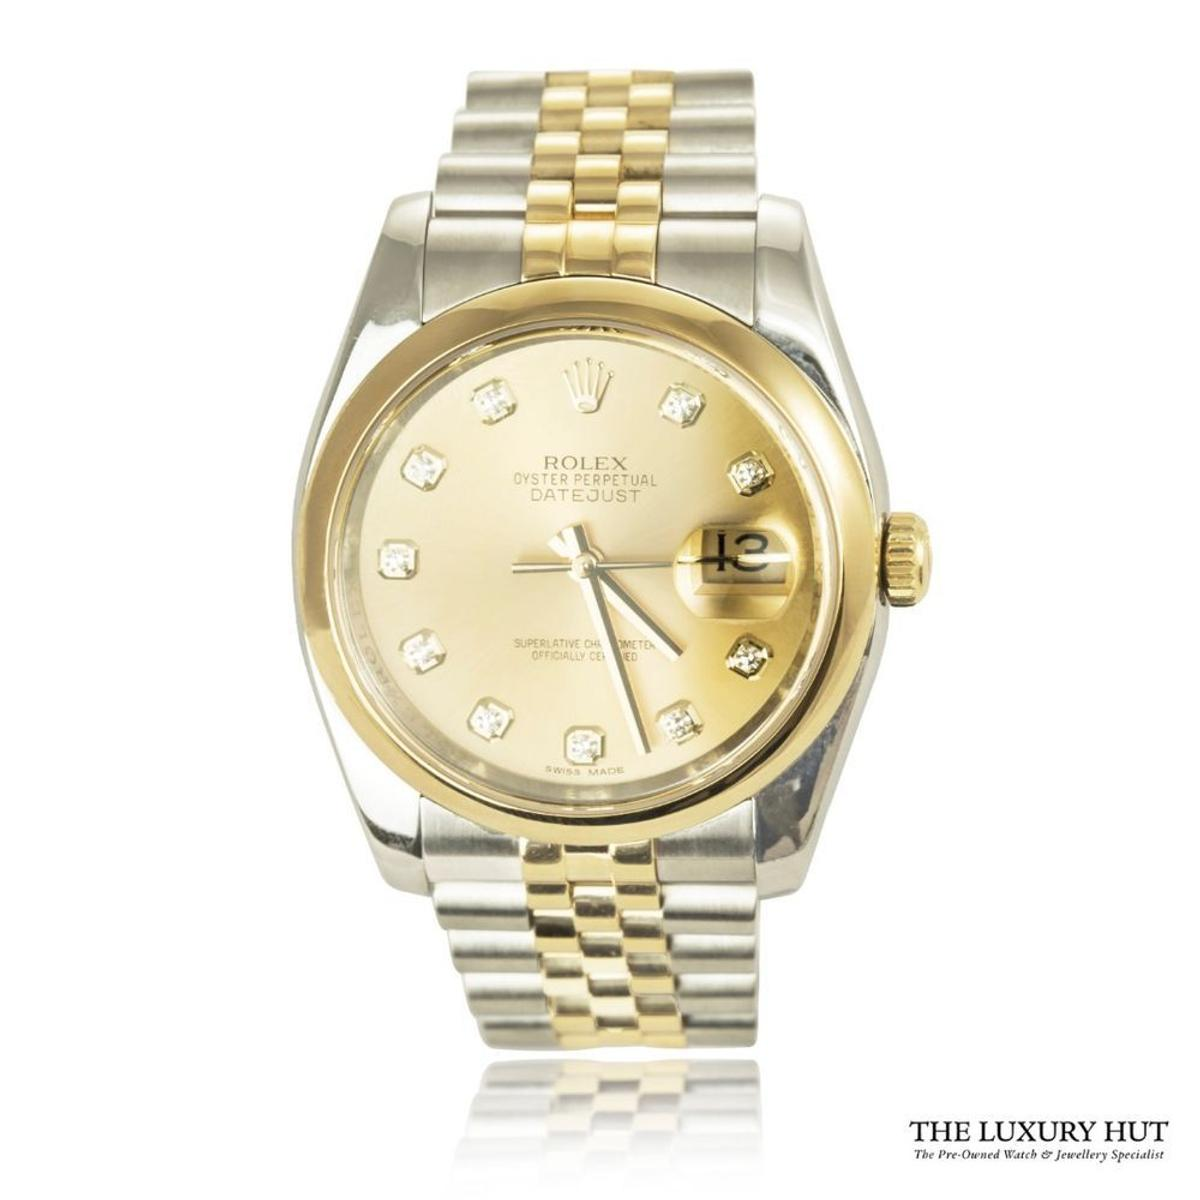 Rolex Bi Metal Oyster Datejust Diamond Watch